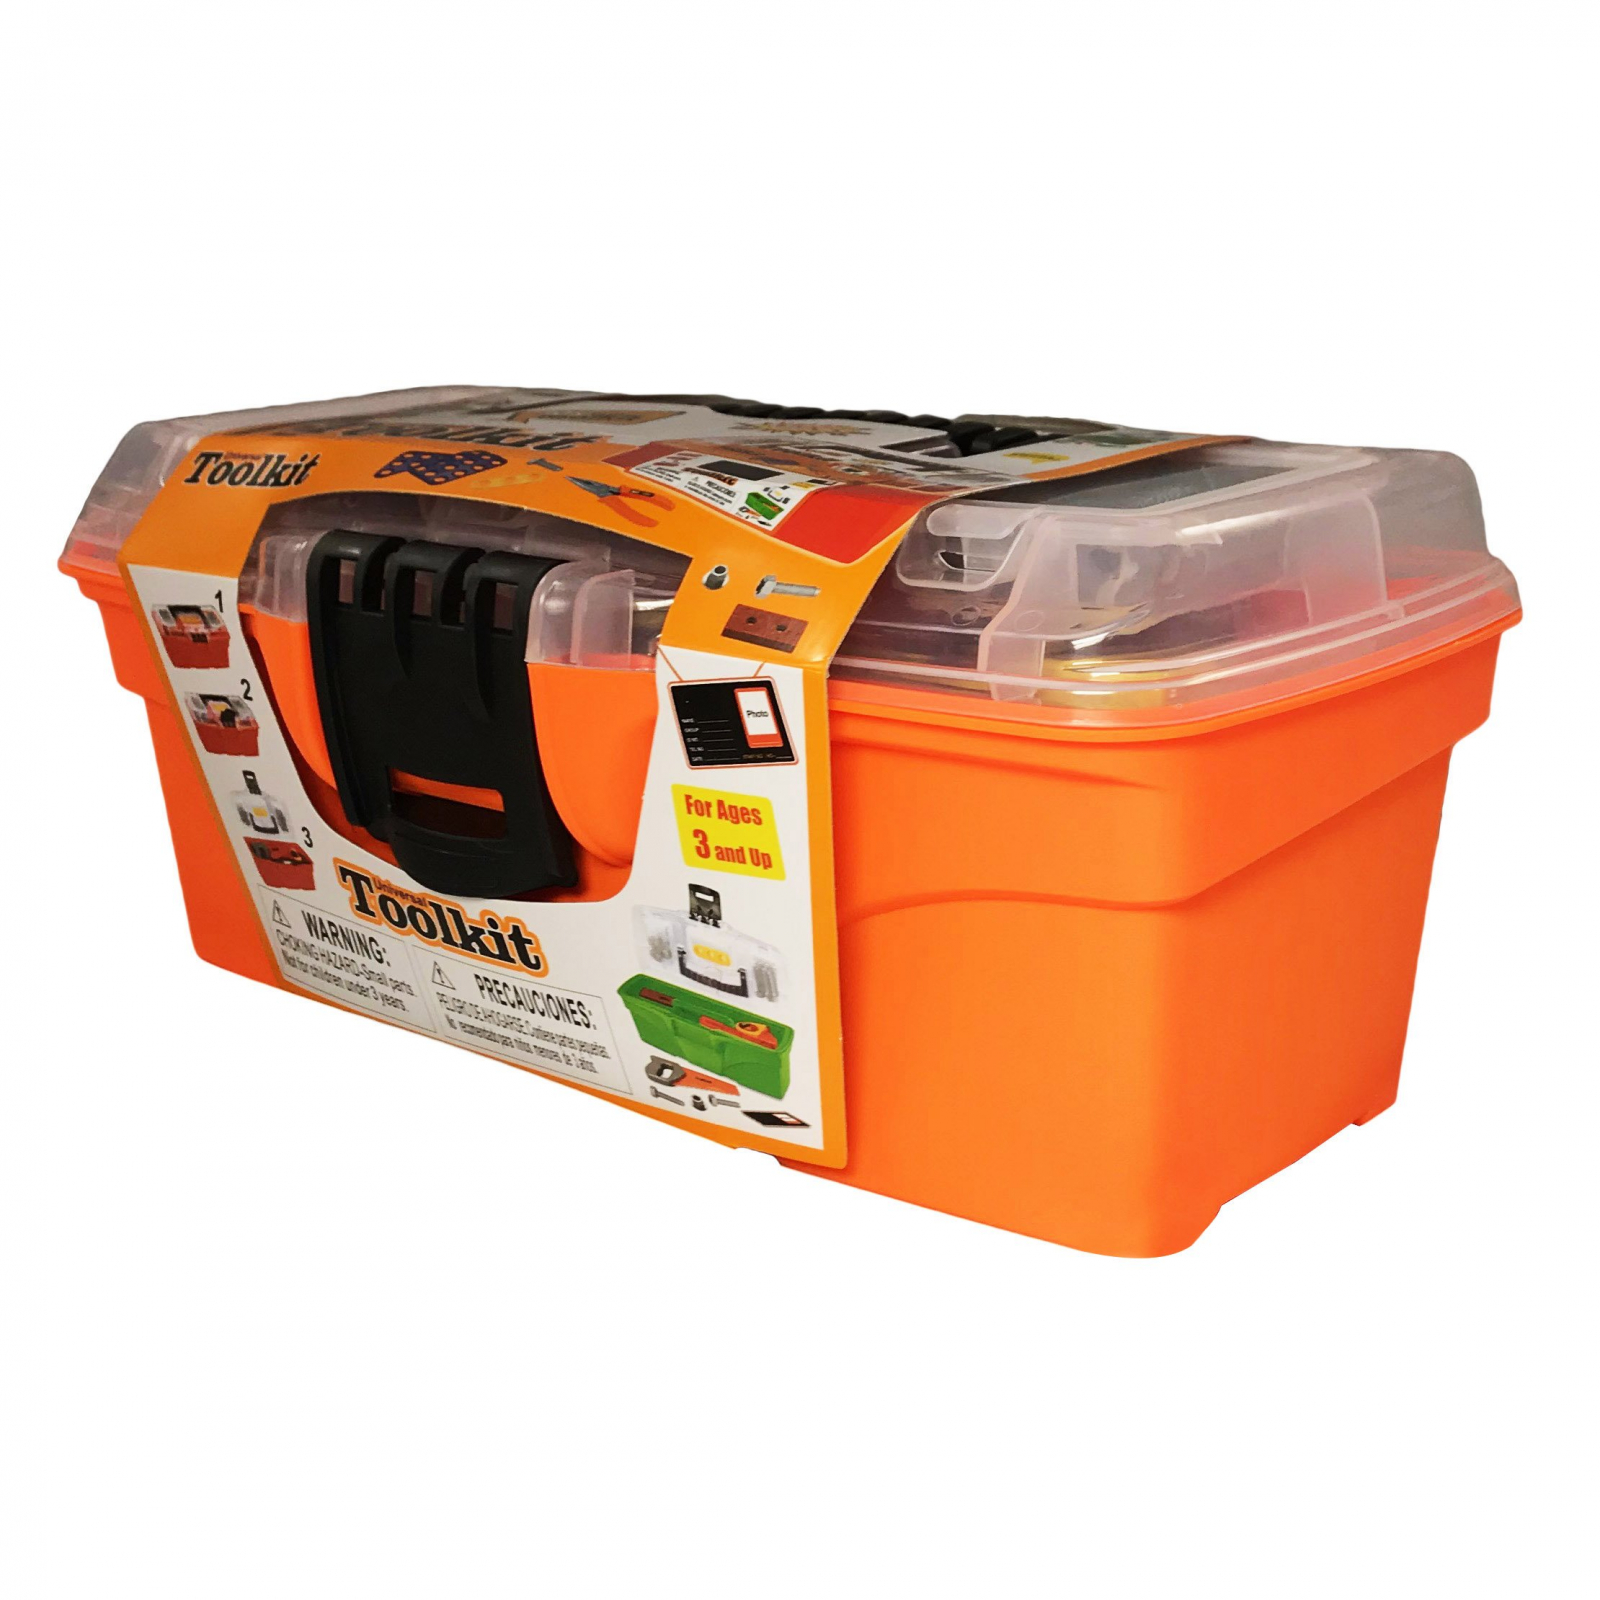 KidPlay Products Educational Tool Carrier Box Set for Kids